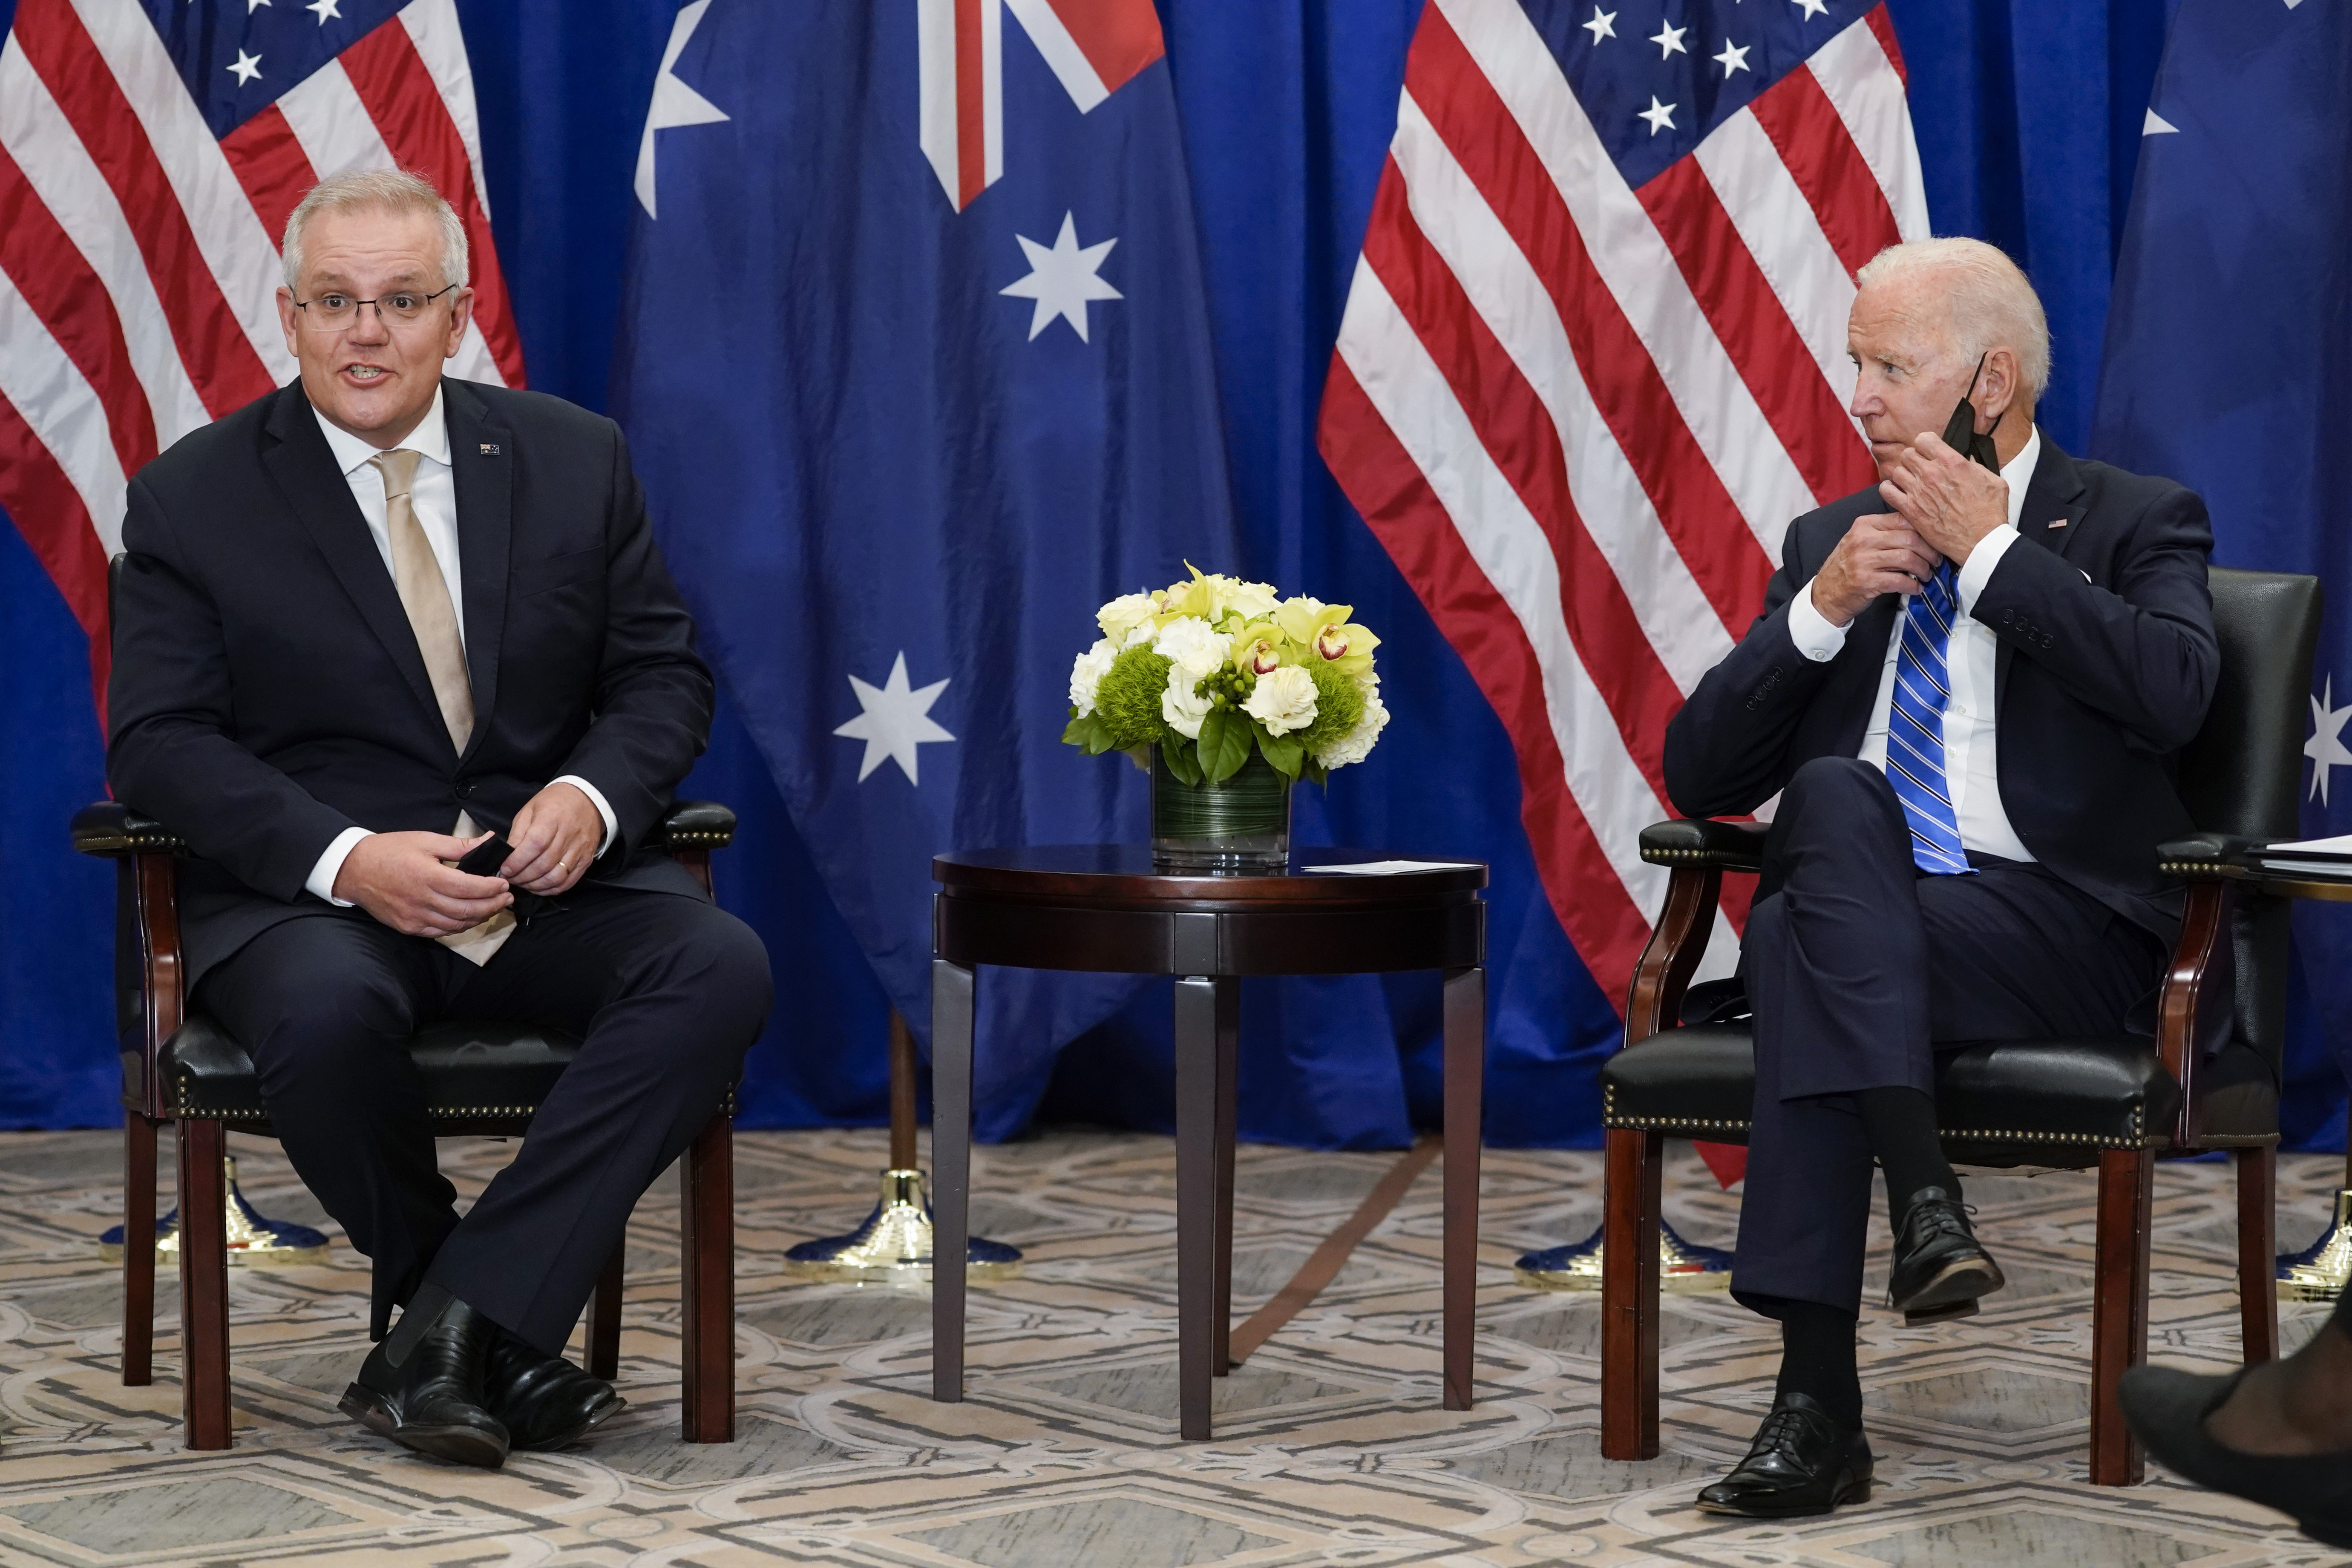 Australia and US 'in lockstep' in first meeting since AUKUS deal